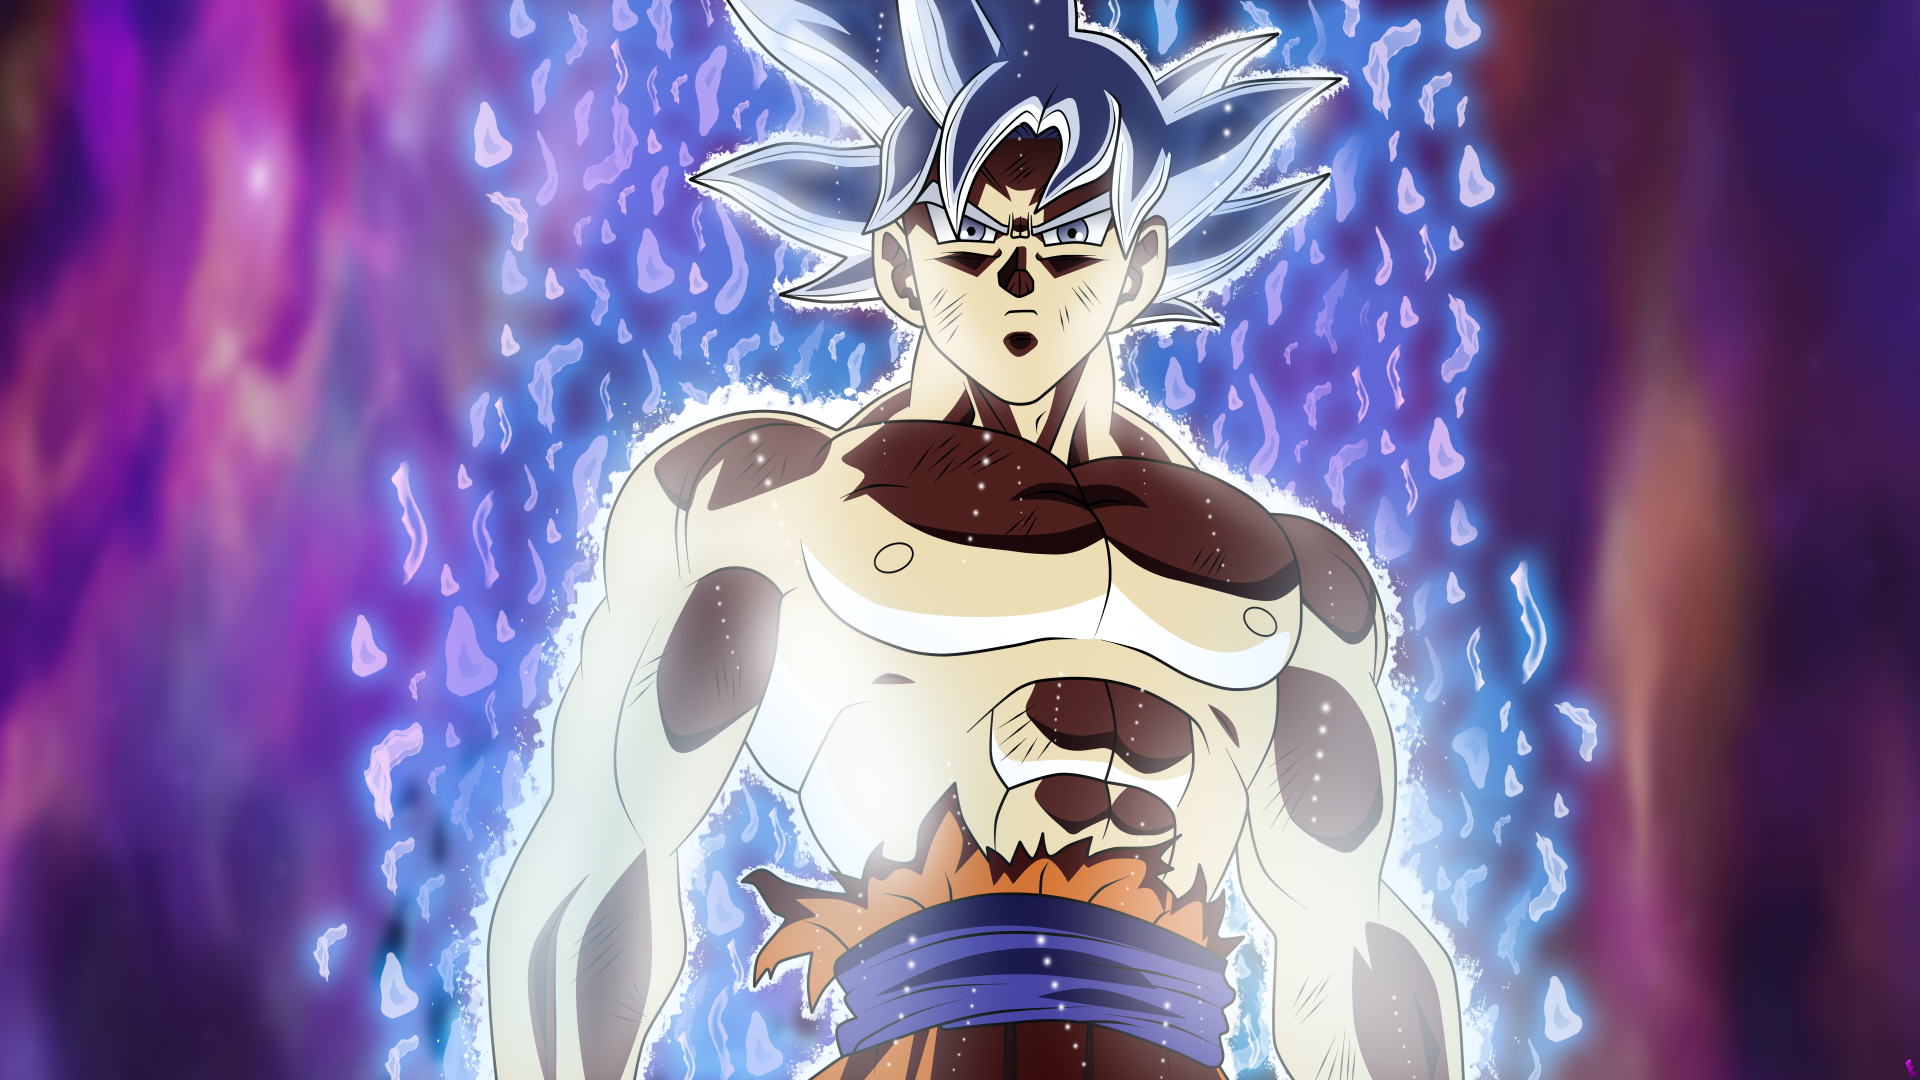 Anime - Dragon Ball Super  Goku Ultra Instinct (Dragon Ball) Wallpaper